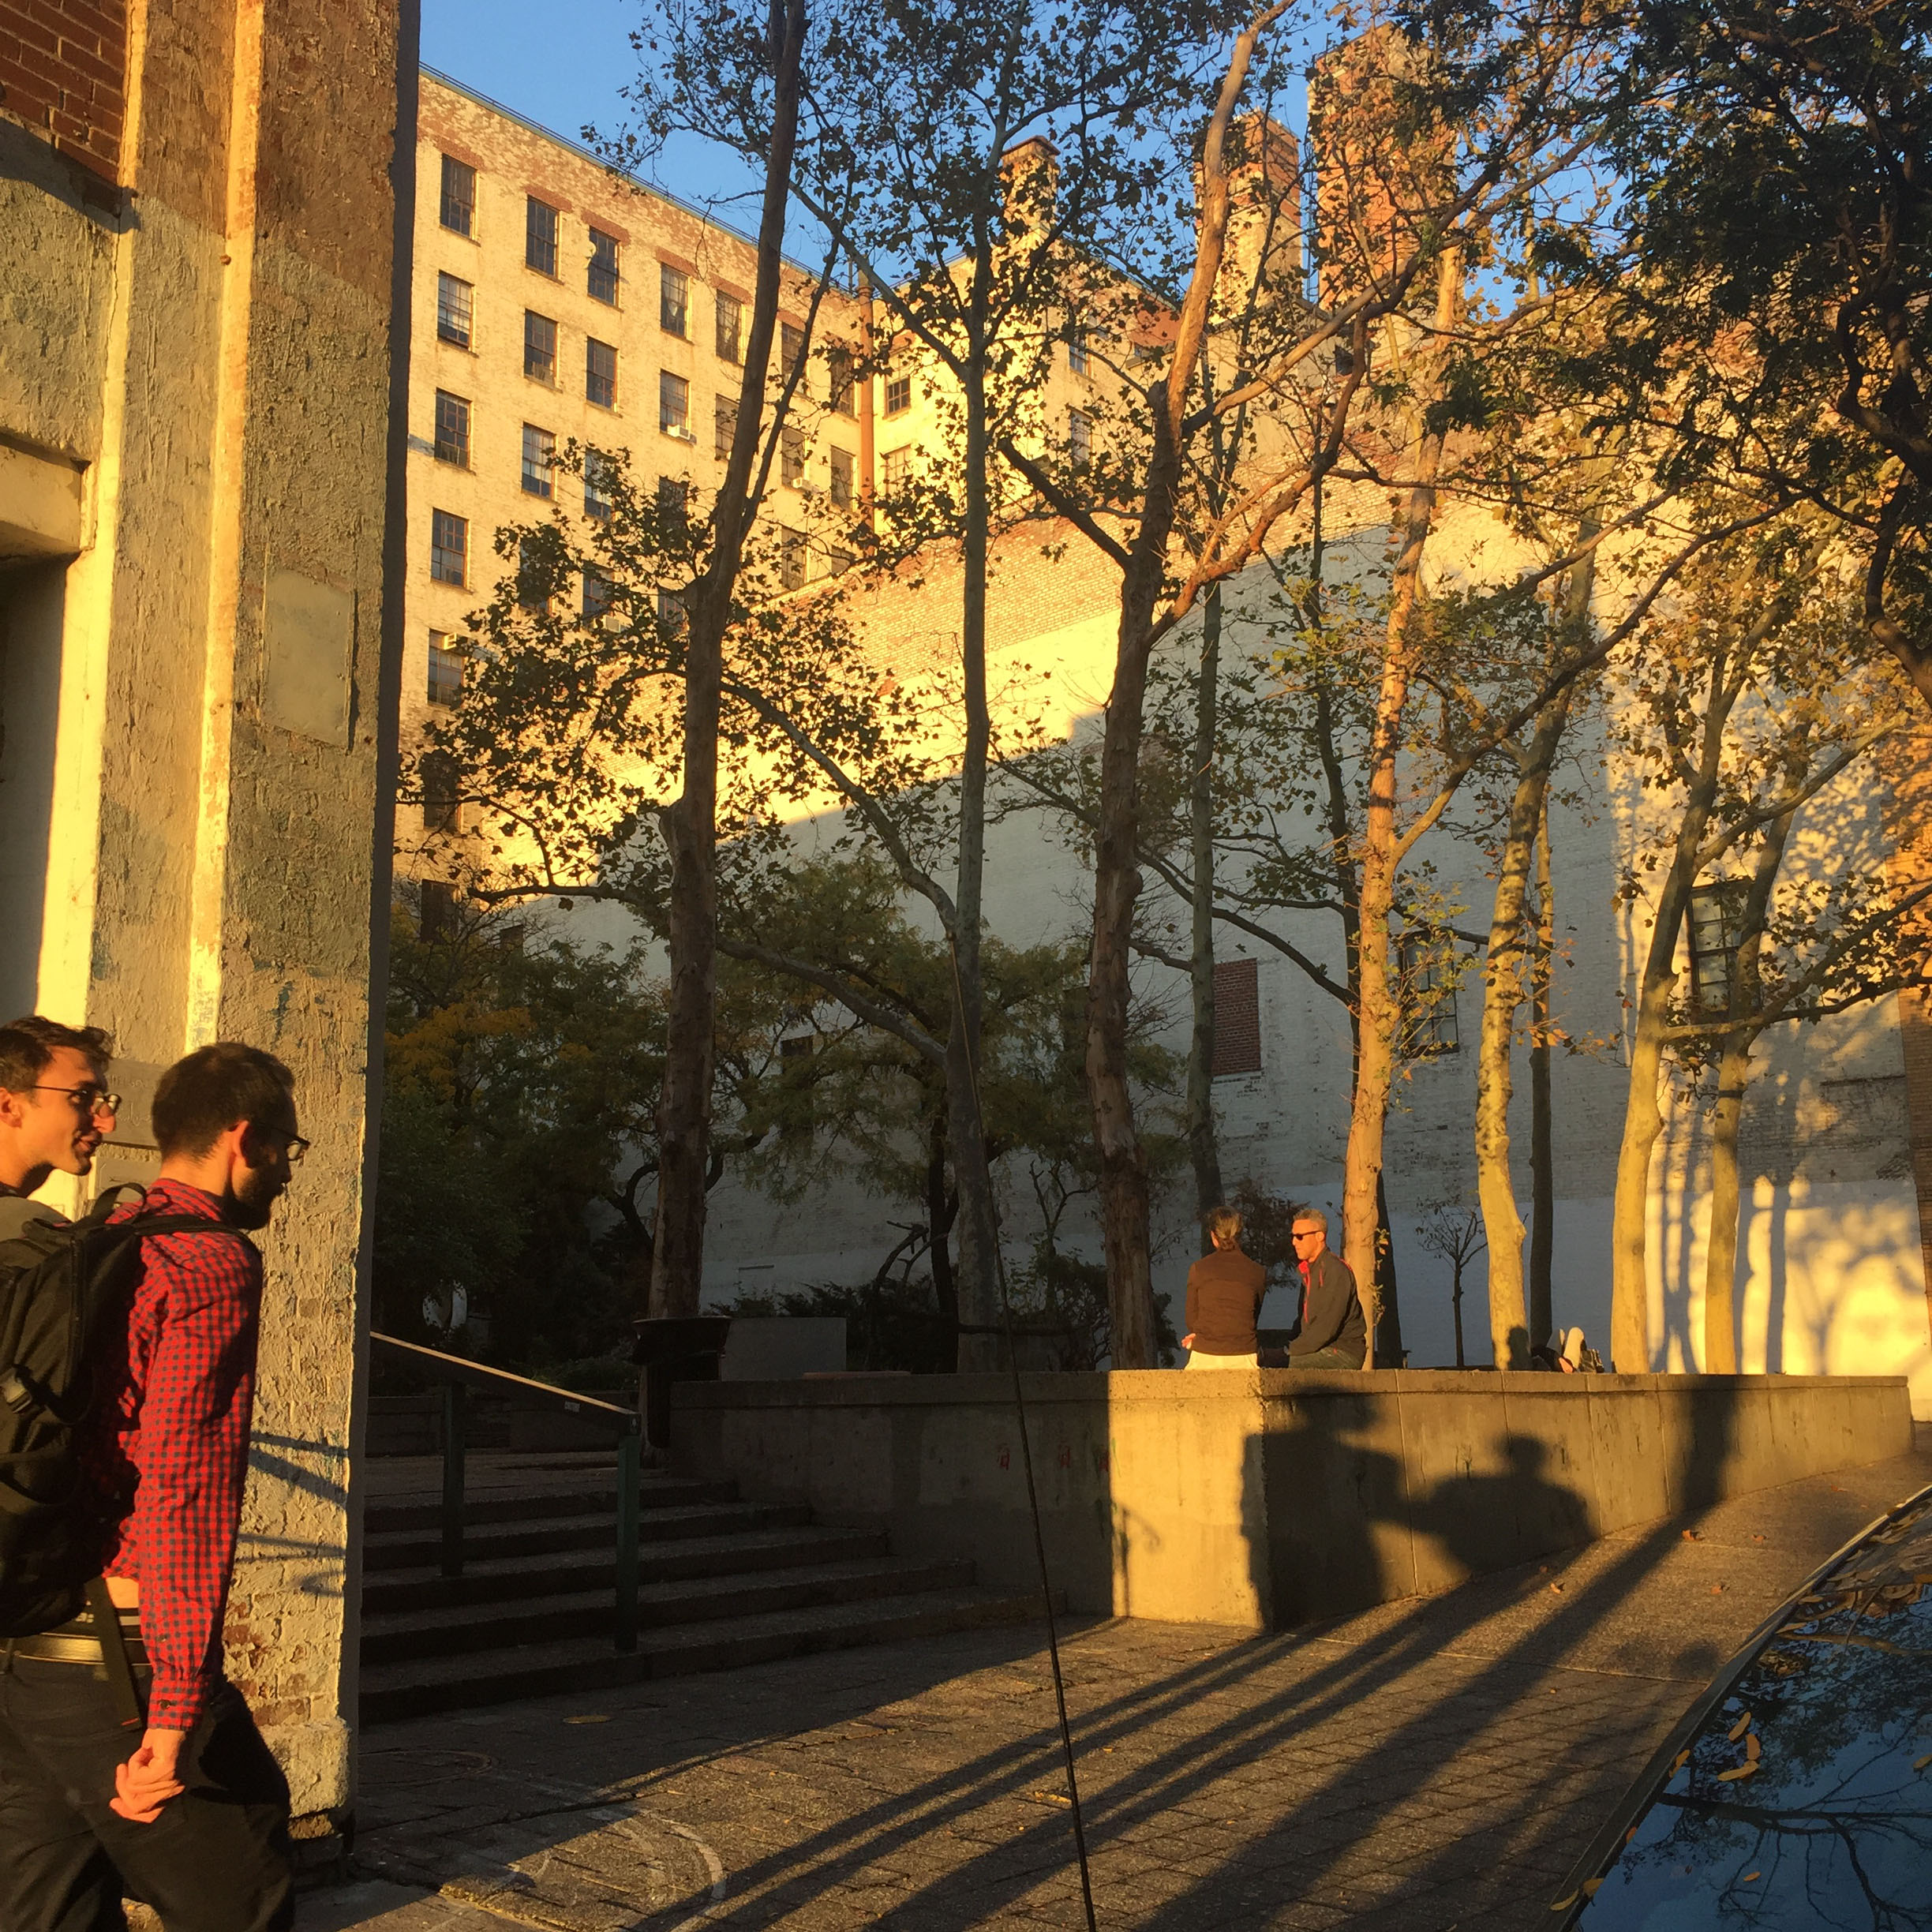 Golden Hour at Westbeth